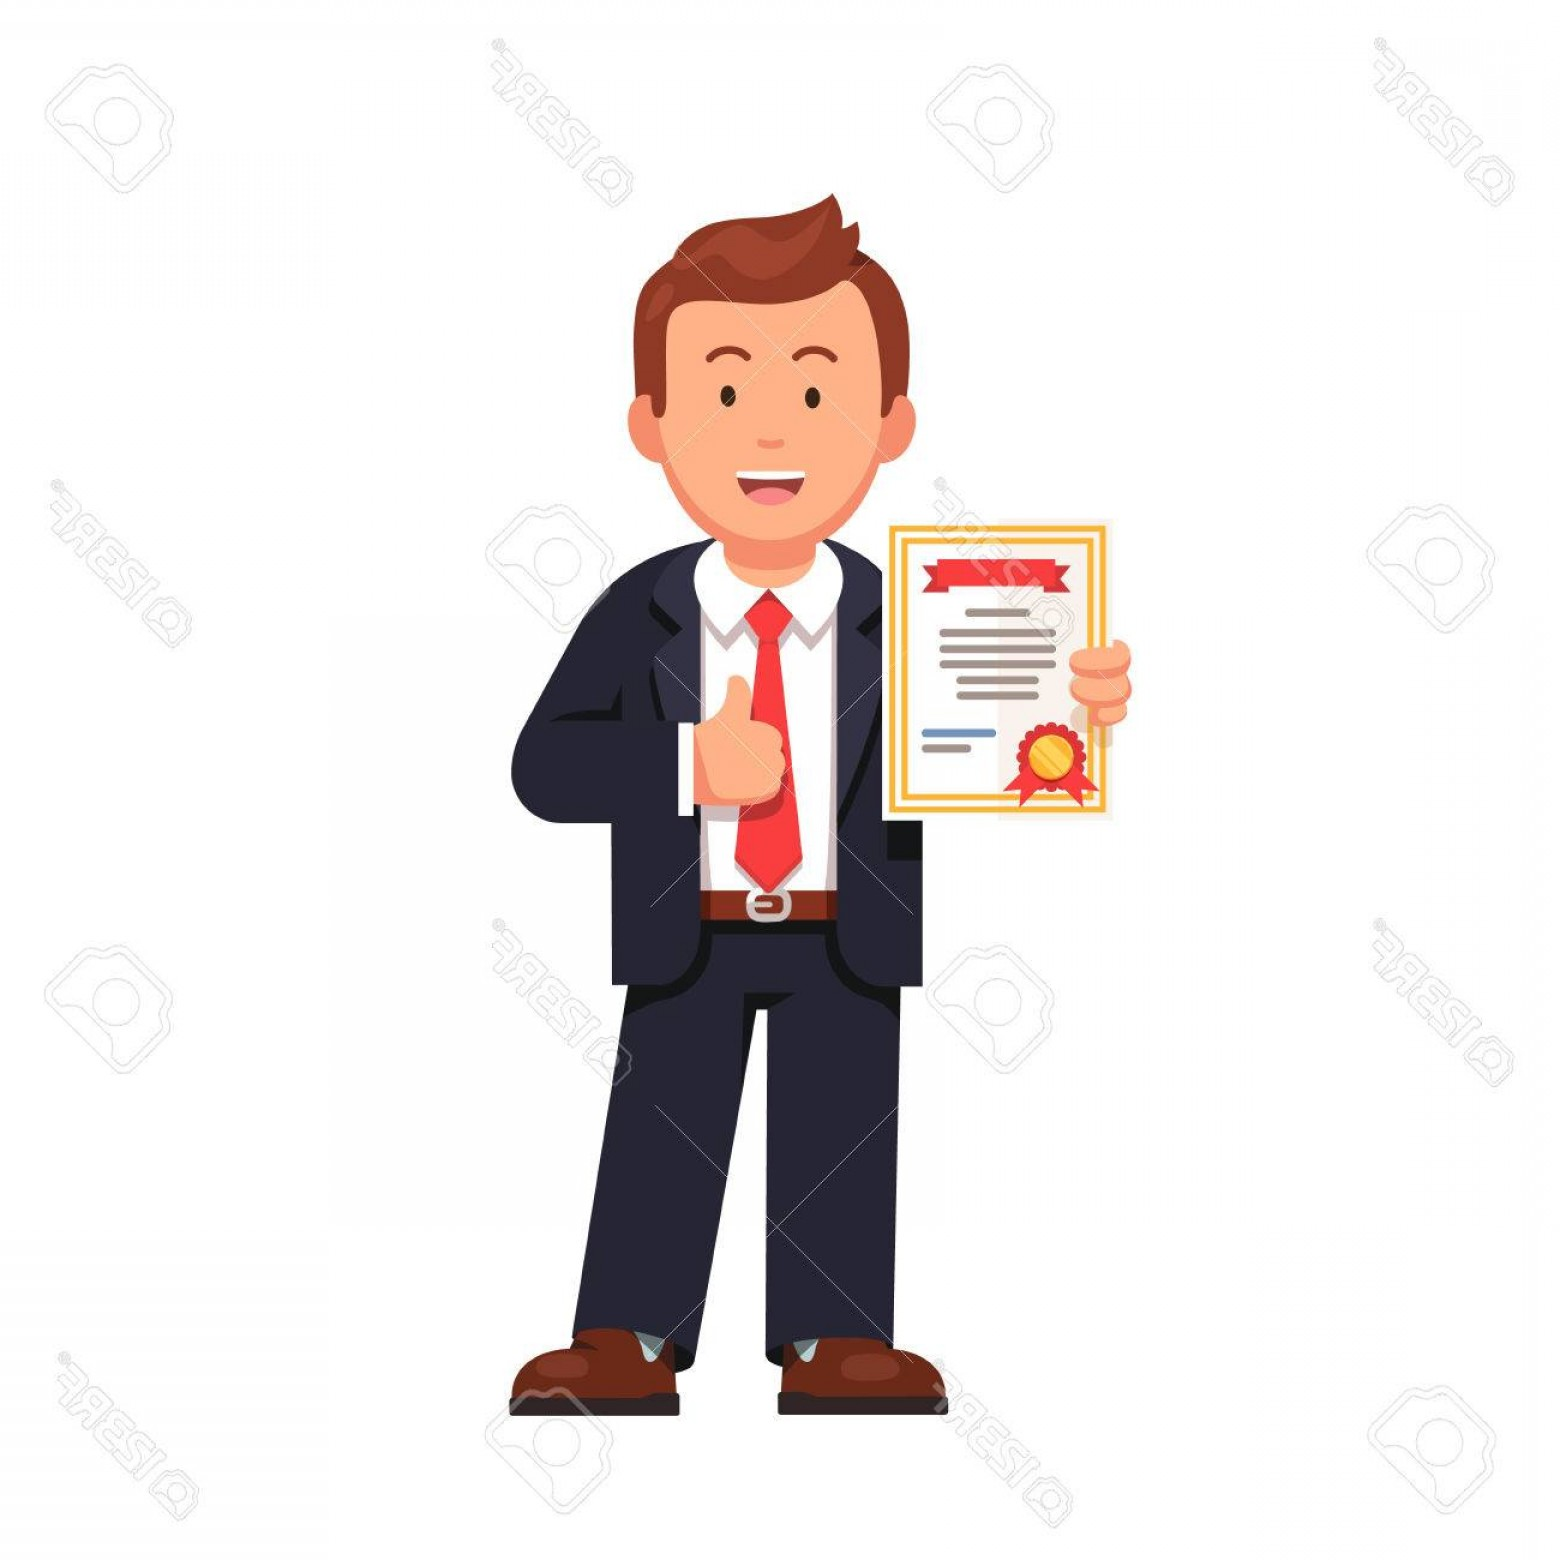 Standing Diploma Vector: Photostock Vector Standing Business Man Holding Certificate Or Diploma And Showing Thumbs Up Gesture Flat Style Vector